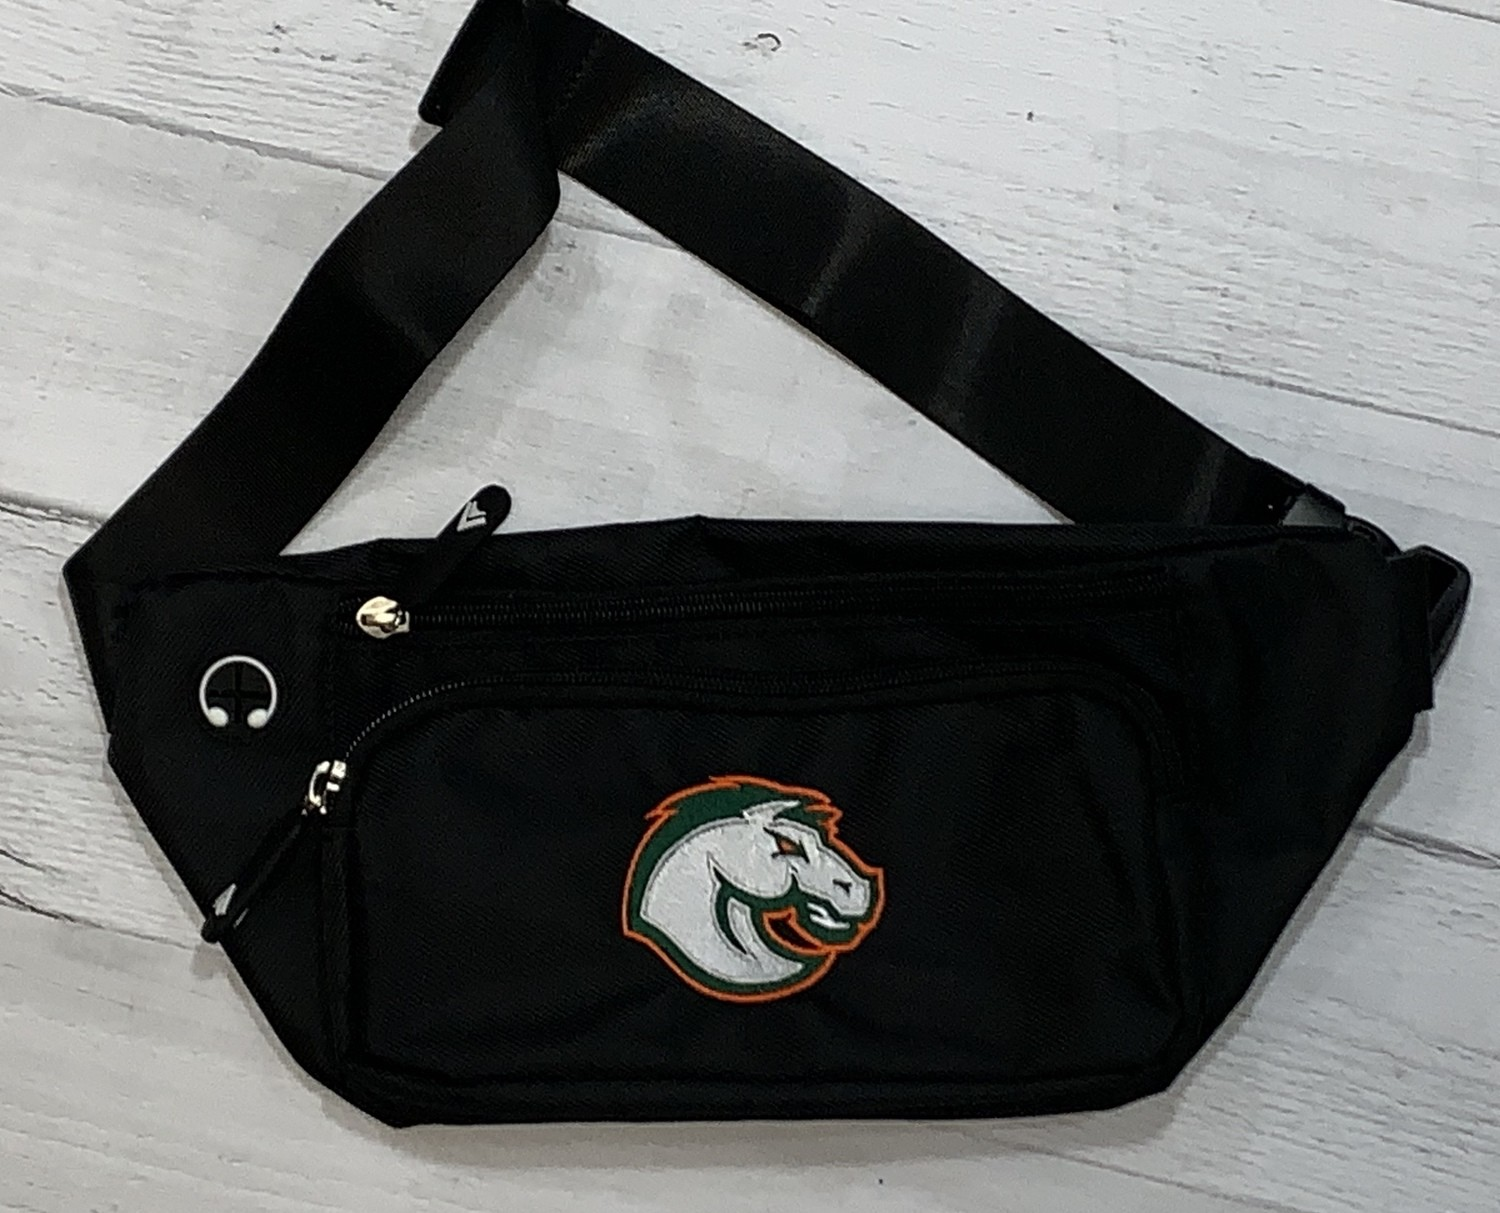 Fanny Pack with Douglass Broncos Logo